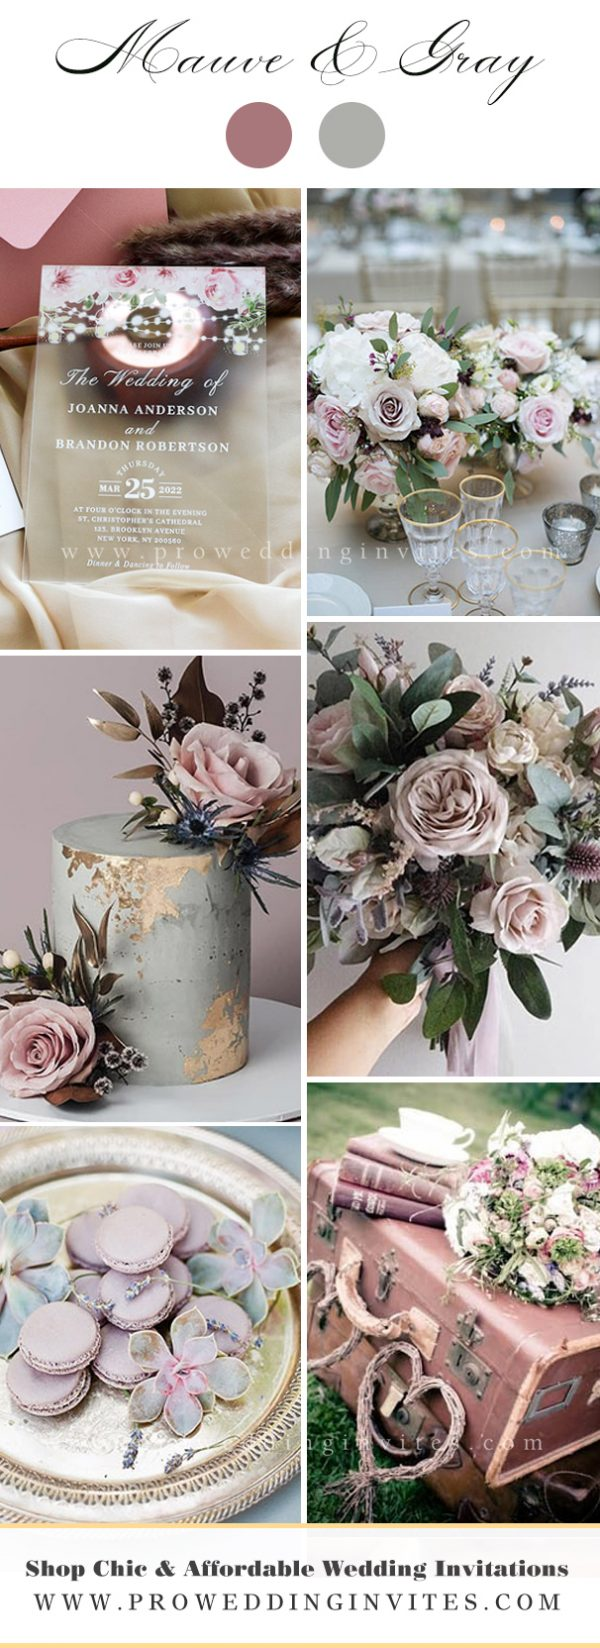 Mauve and Gray Wedding Wedding Color Ideas with Matching Invitations